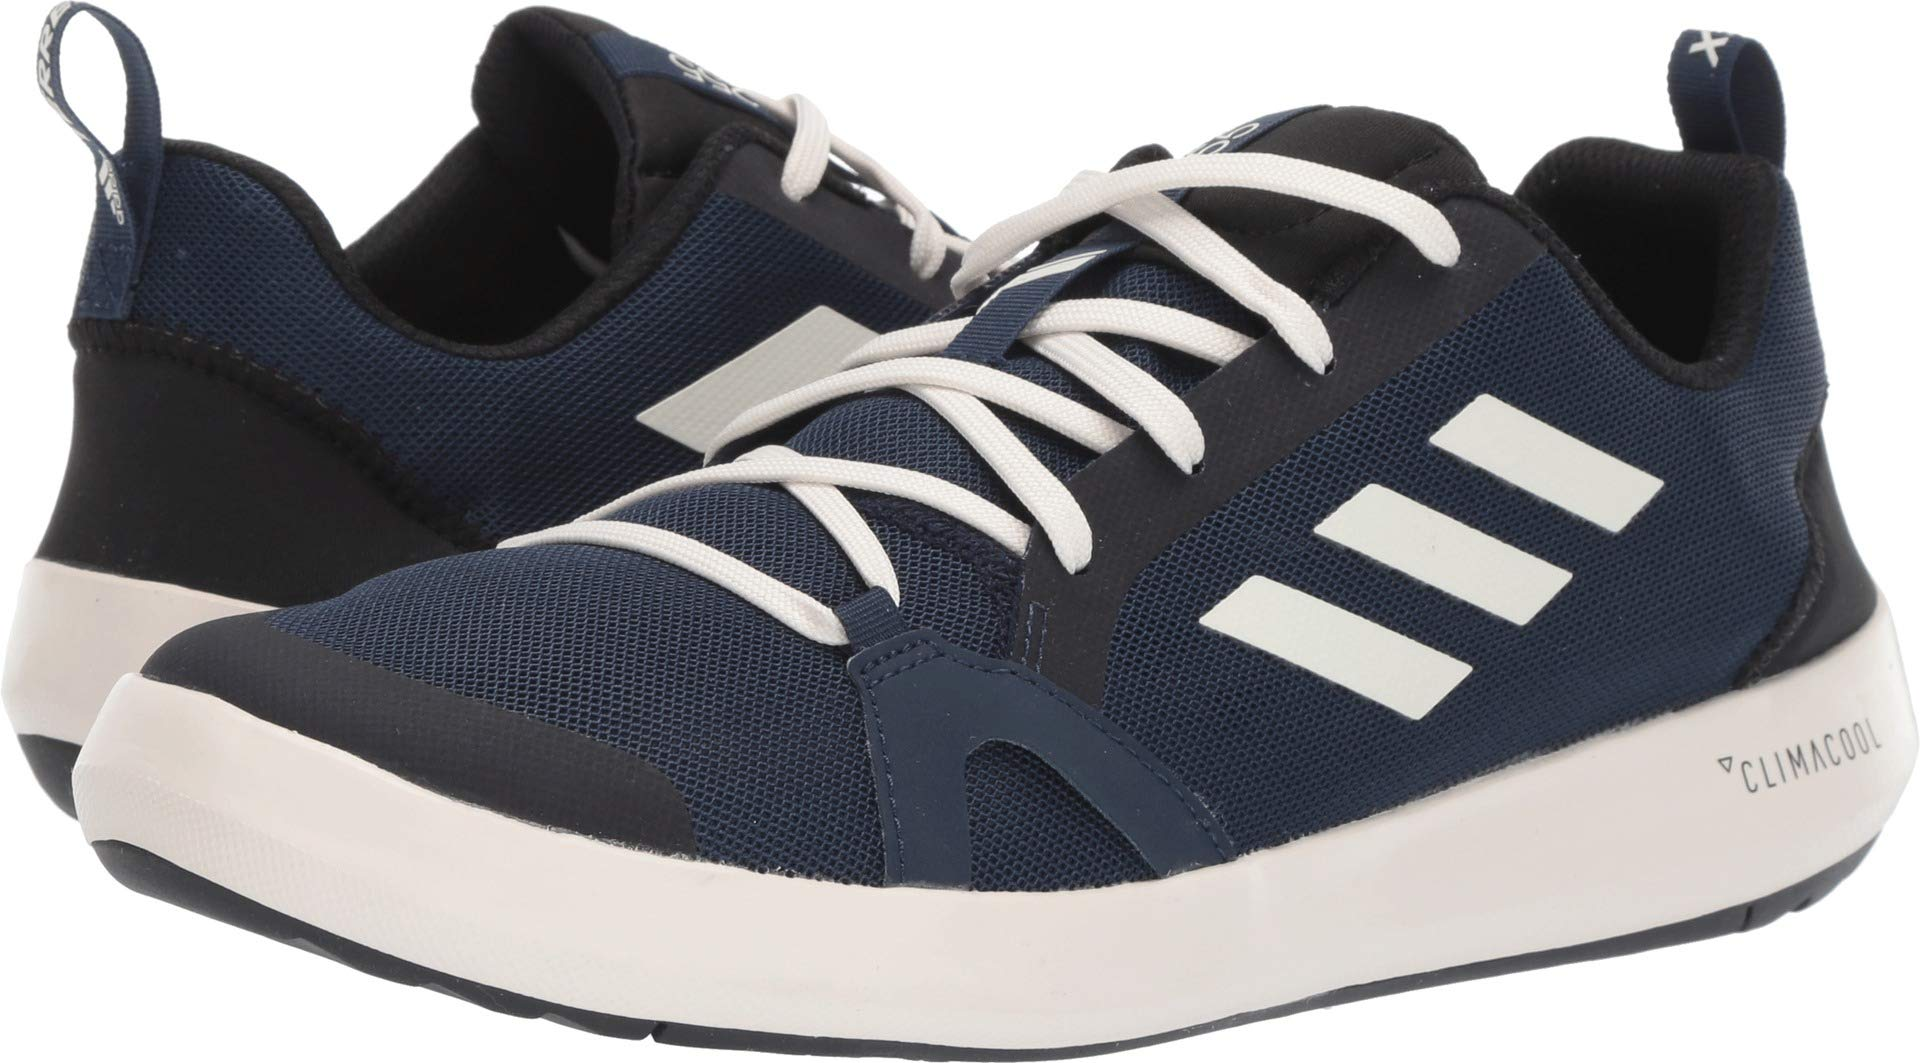 adidas outdoor Men's Terrex CC Boat Collegiate Navy/Chalk White/Black 7.5 D US